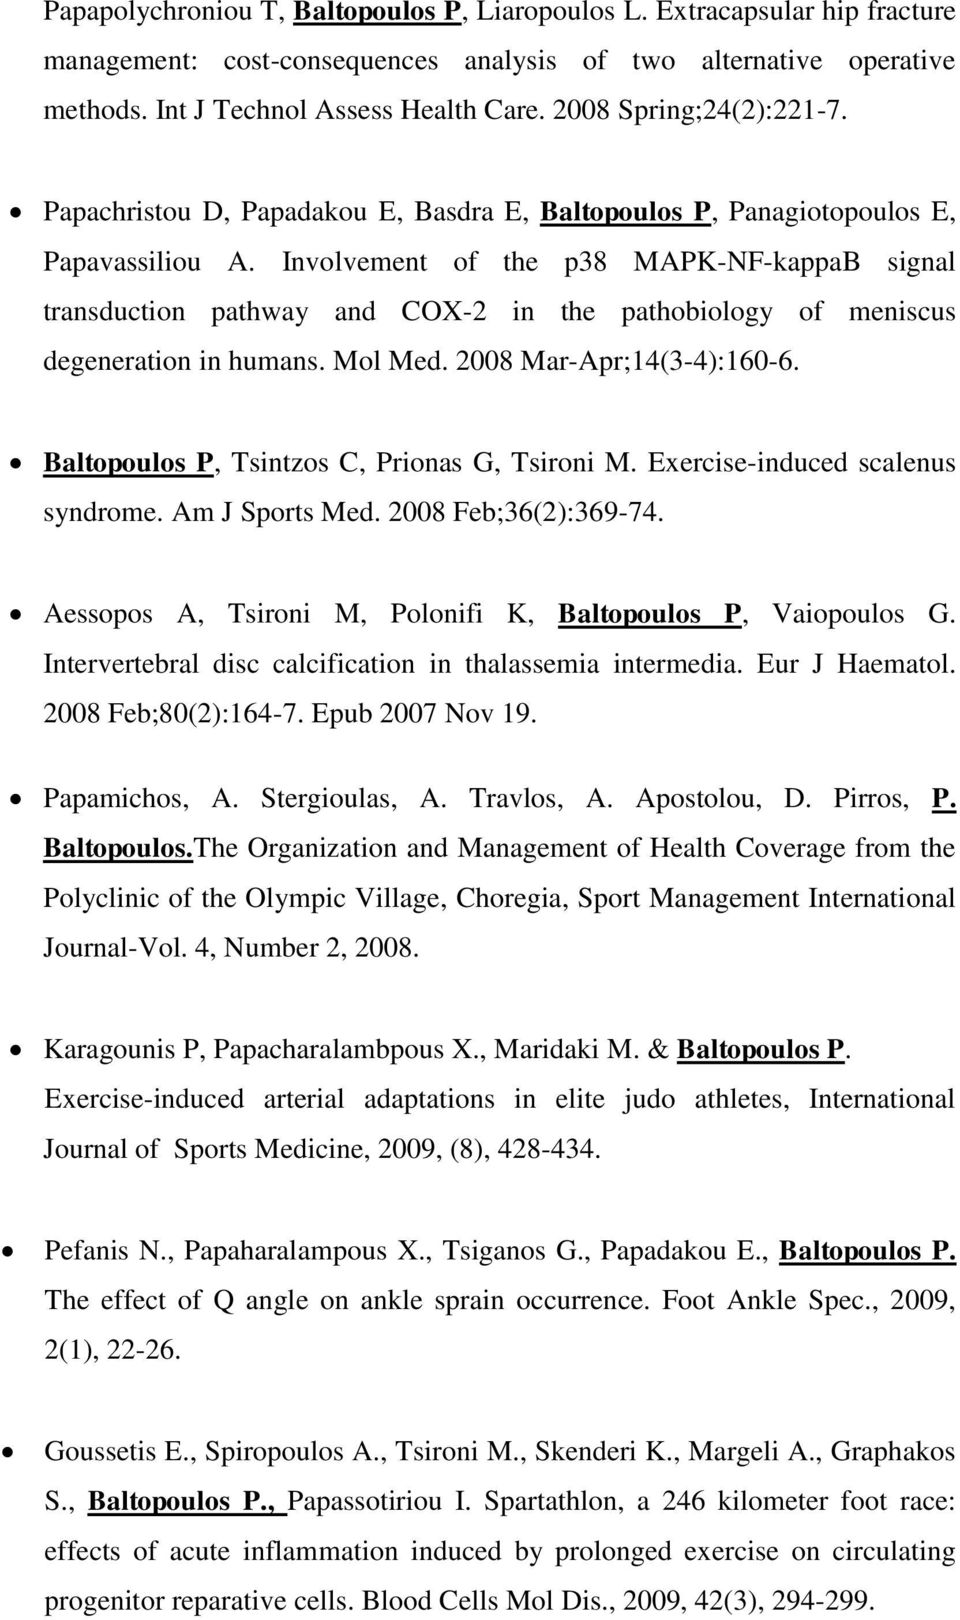 Involvement of the p38 MAPK-NF-kappaB signal transduction pathway and COX-2 in the pathobiology of meniscus degeneration in humans. Mol Med. 2008 Mar-Apr;14(3-4):160-6.